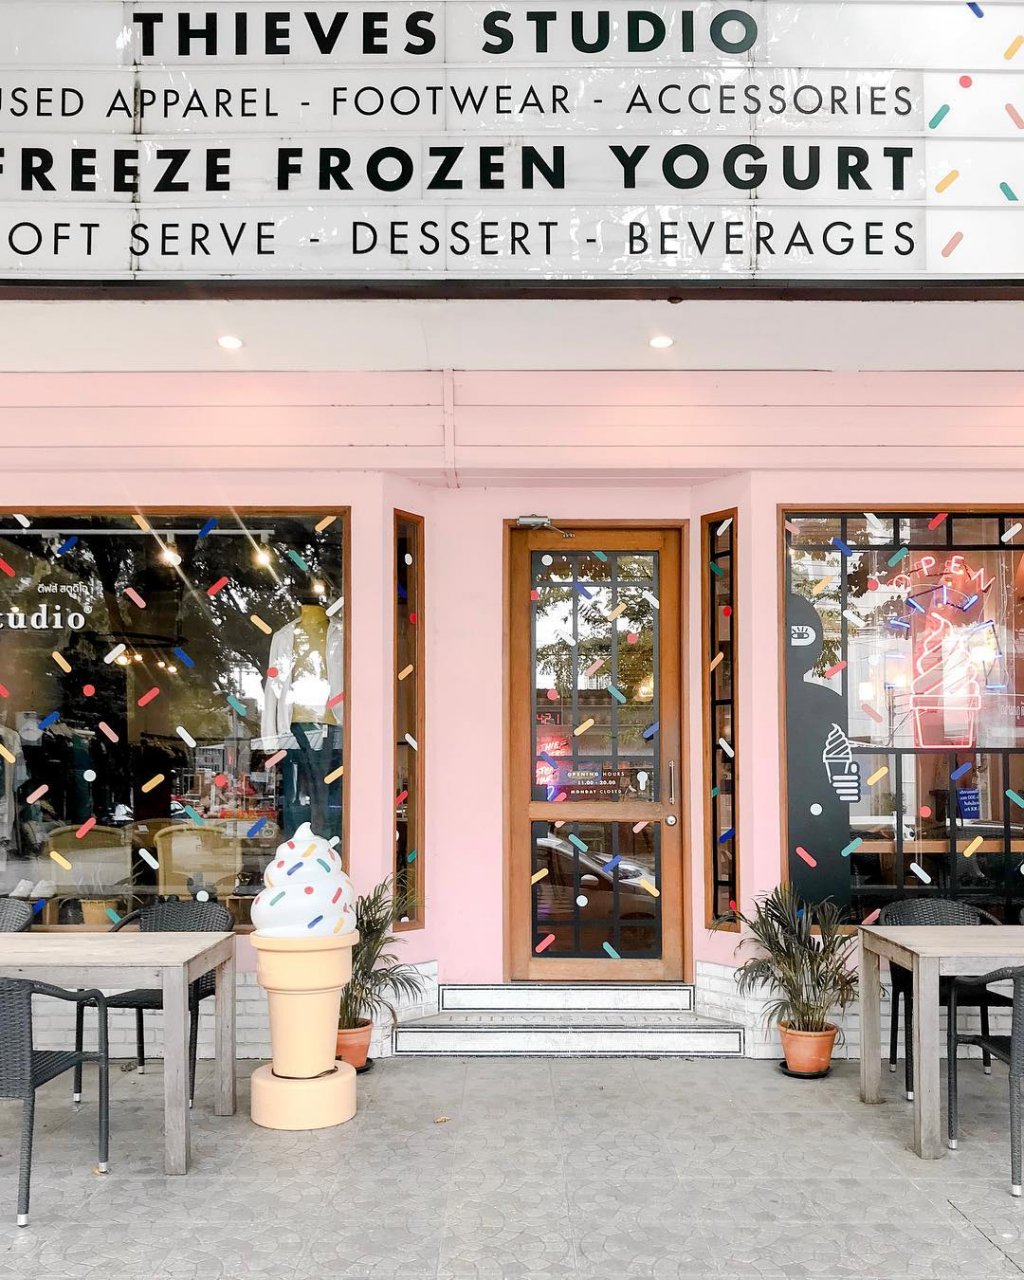 freeze frozen yoghurt pink thmed cafe restaurant shop bangkok thailand insatgrammable froyo